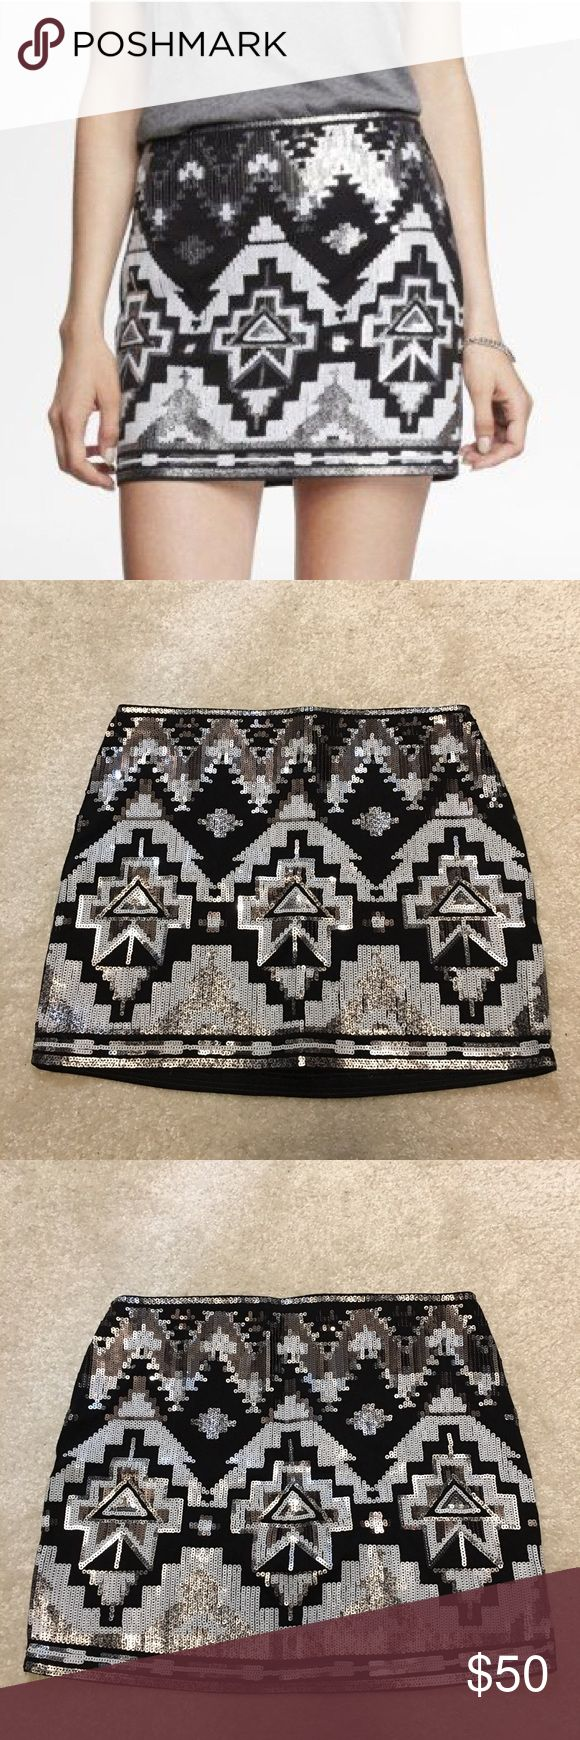 NWOT Express Sequin Mini Skirt Black, Silver and White stretchy Sequin Mini Skirt. Never worn, brand new! Great for dressing up! Will Accept Offers! :) Express Skirts Mini